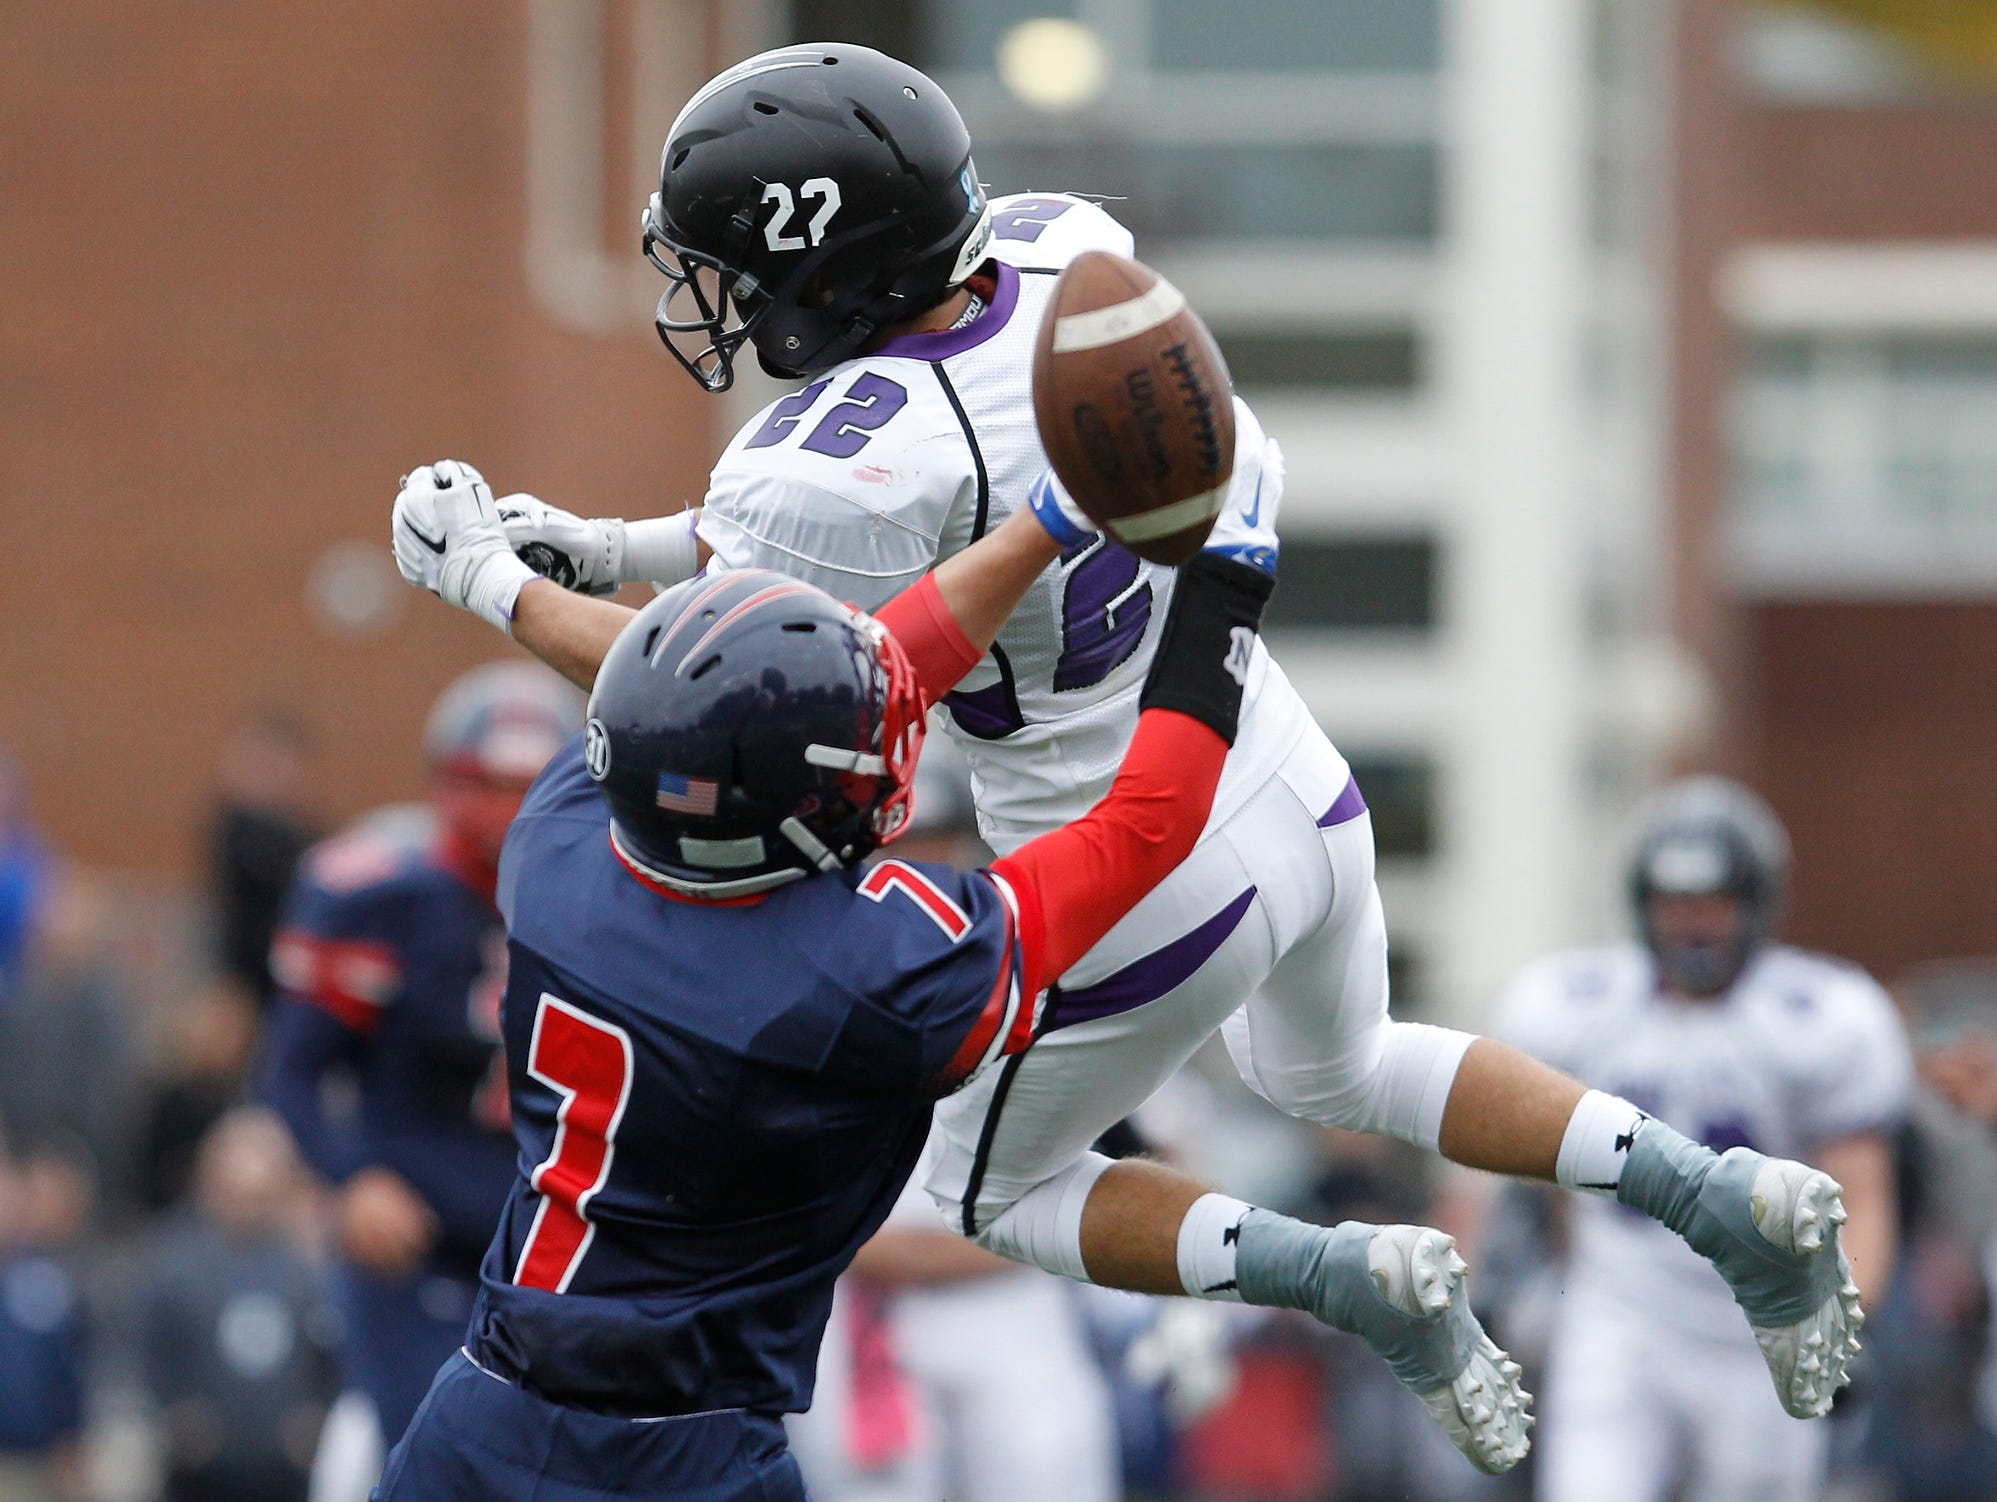 Eastchester's Jacob Risi (7) breaks up a pass intended for John Jay's Jackson Reiger (22) during a varsity football game at Eastchester High School on Saturday, Oct. 24, 2015.